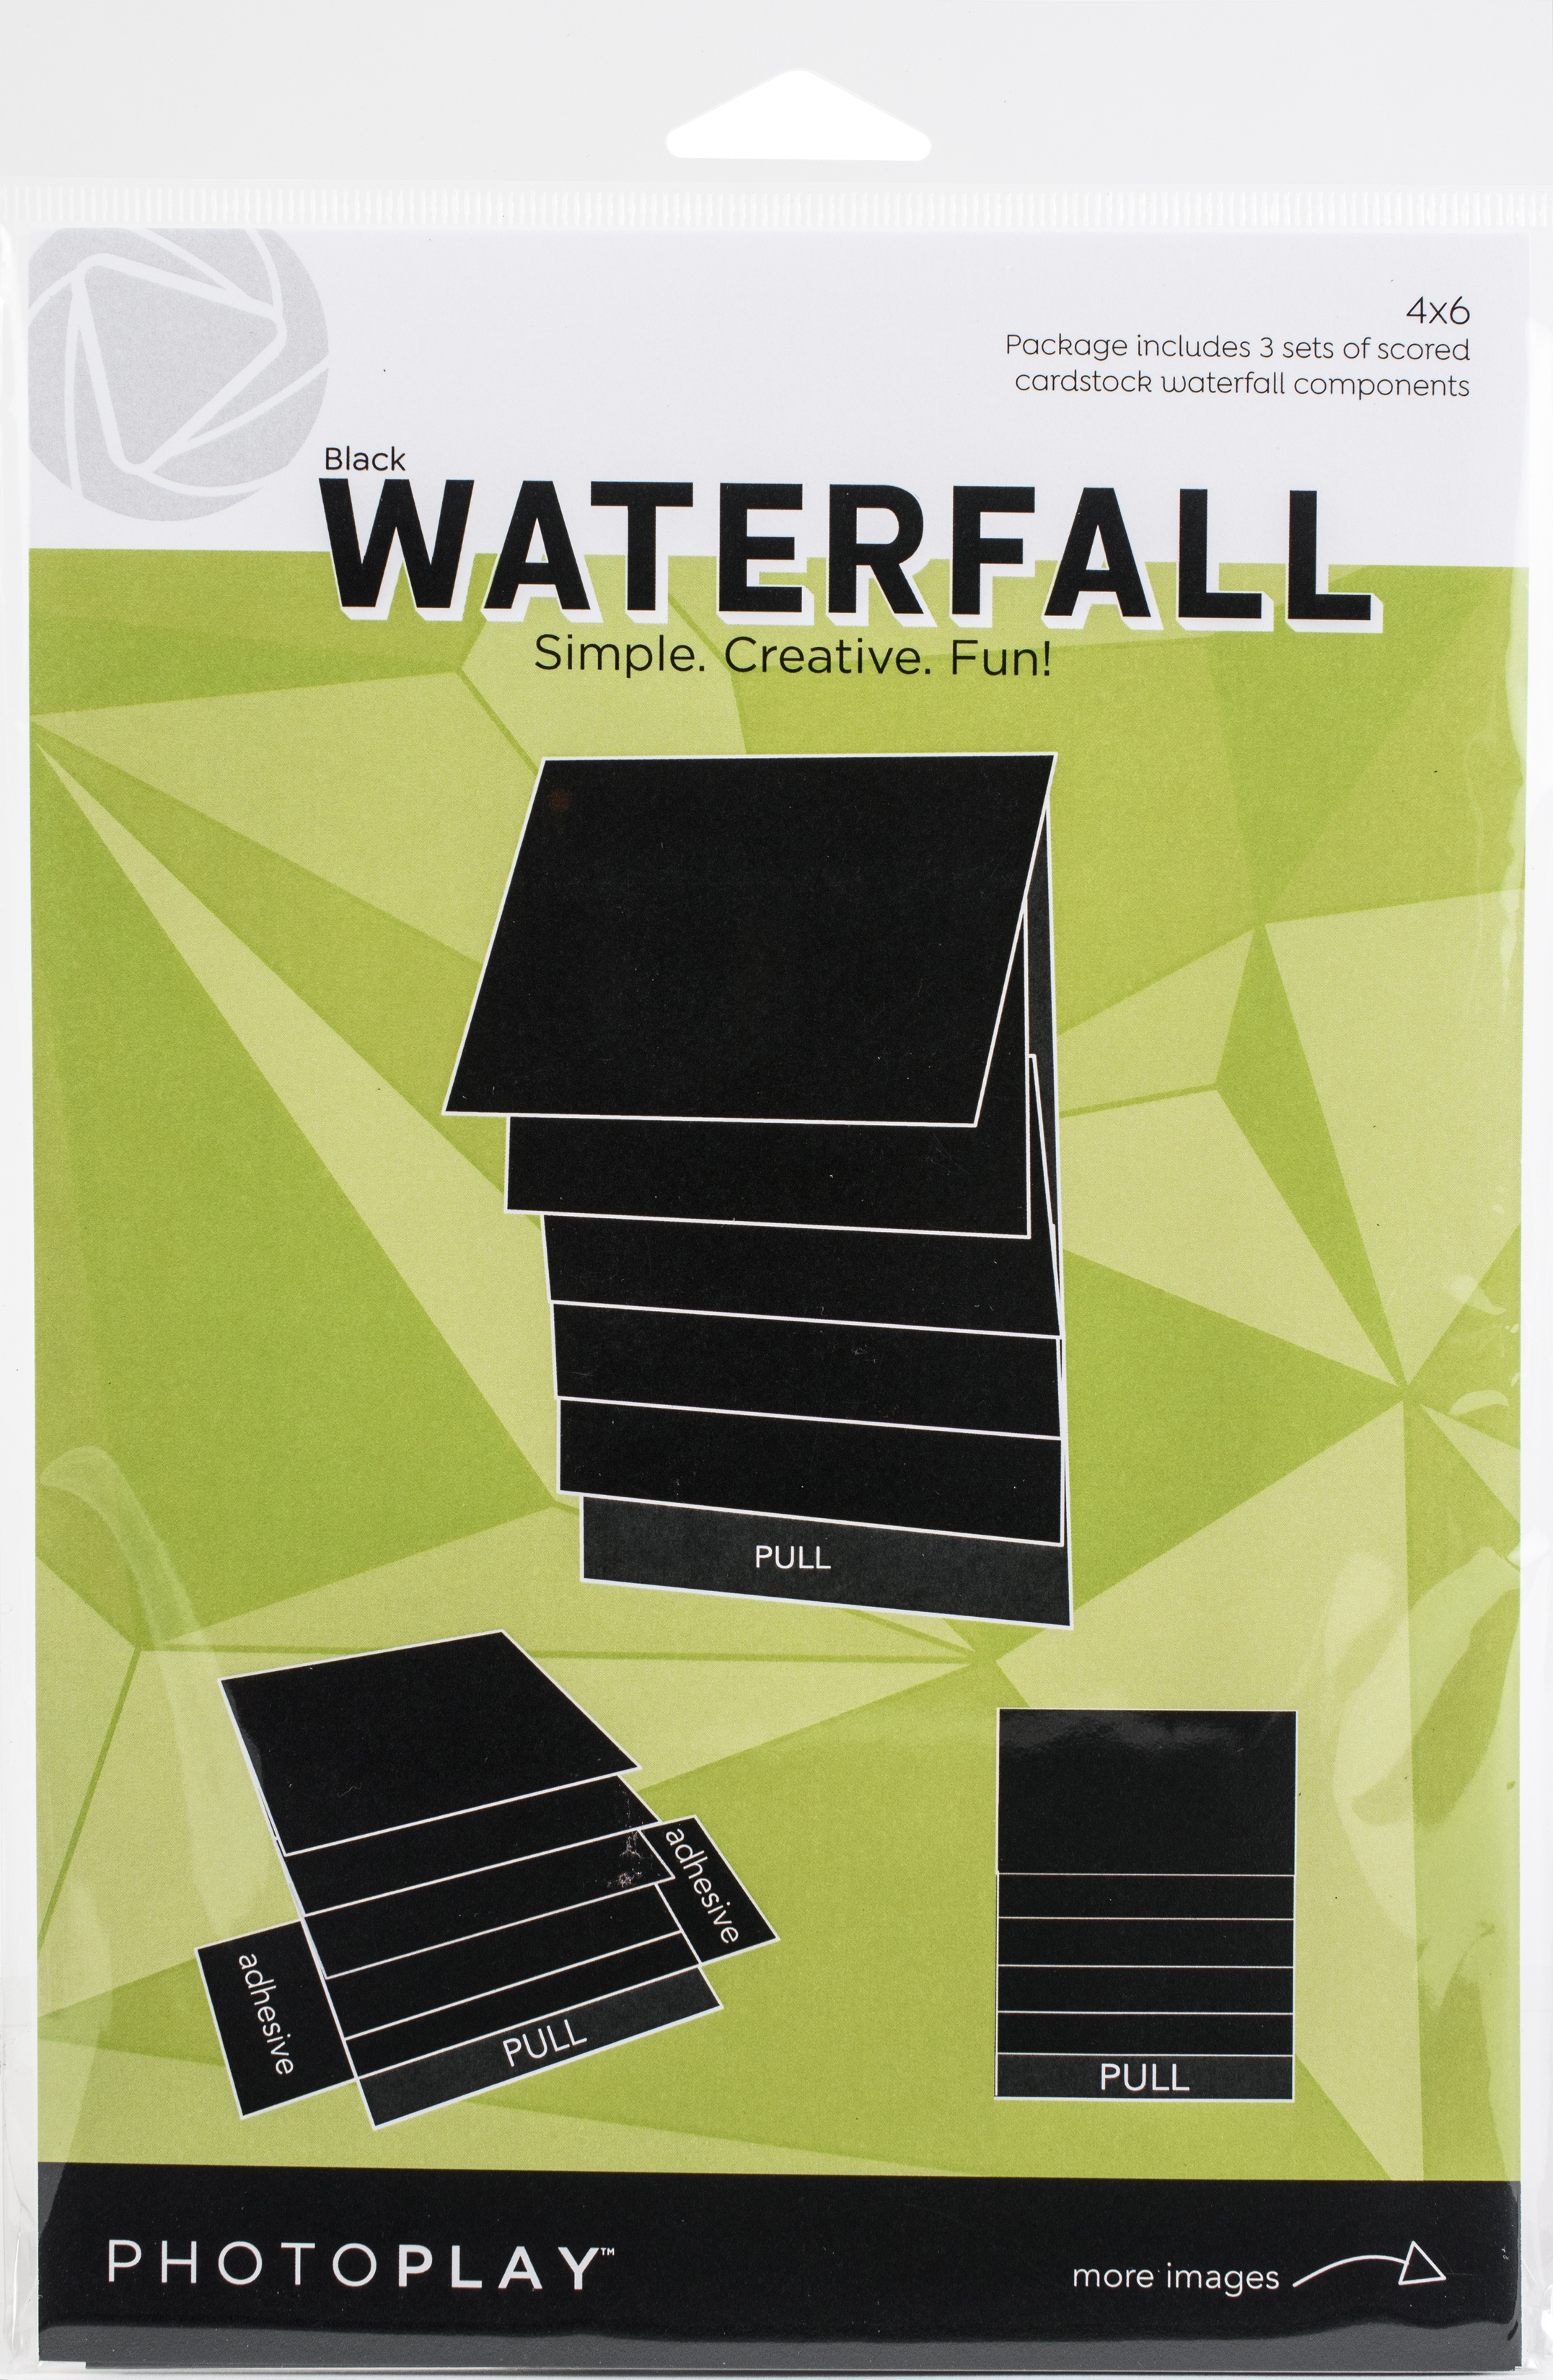 PhotoPlay Maker Series 4x6 Waterfall - Black, Mechanical